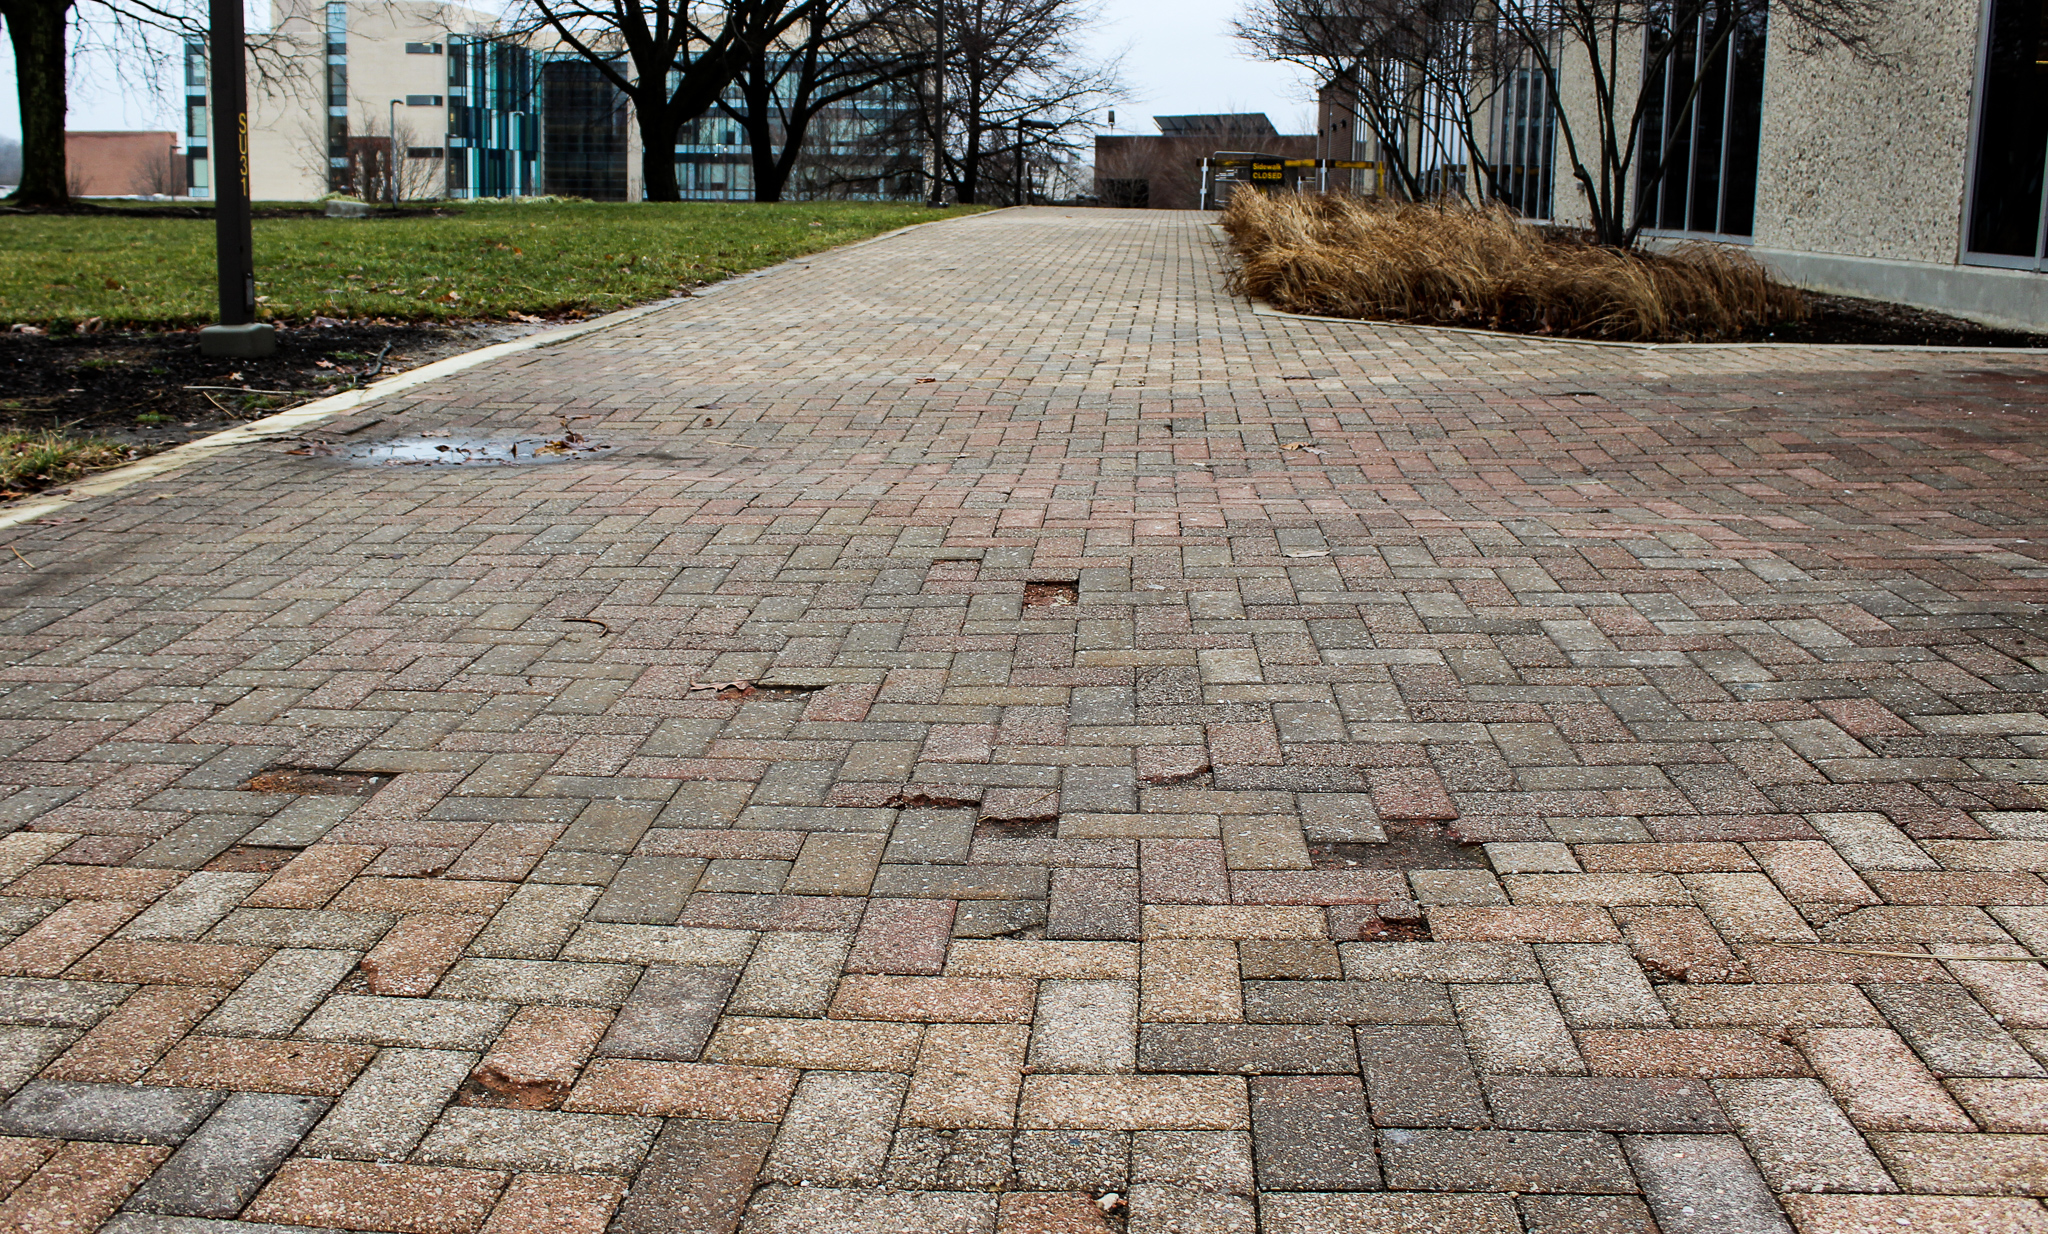 Broken bricks in front of the Student Union | Photo by Daniel Delgado | The Wright State Guardian